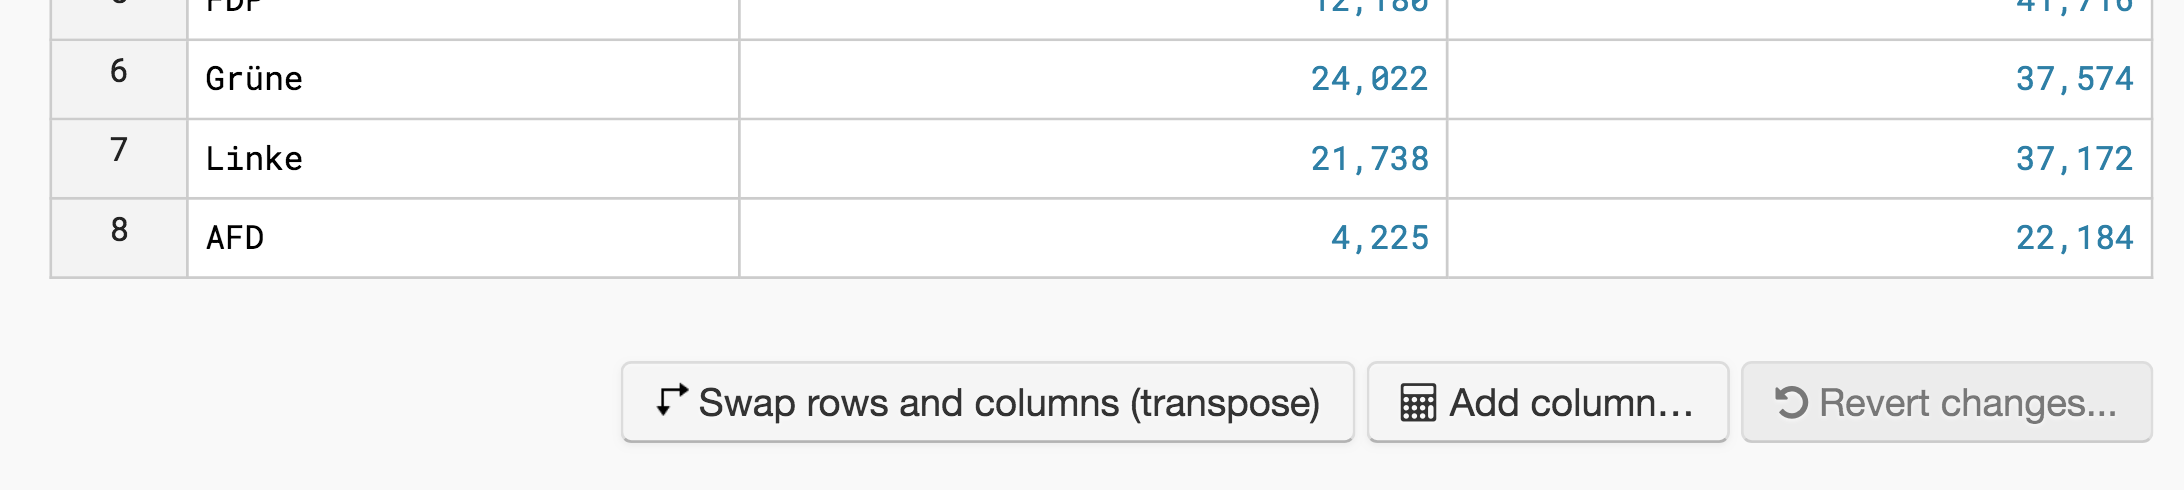 How to add new columns from existing data - Datawrapper